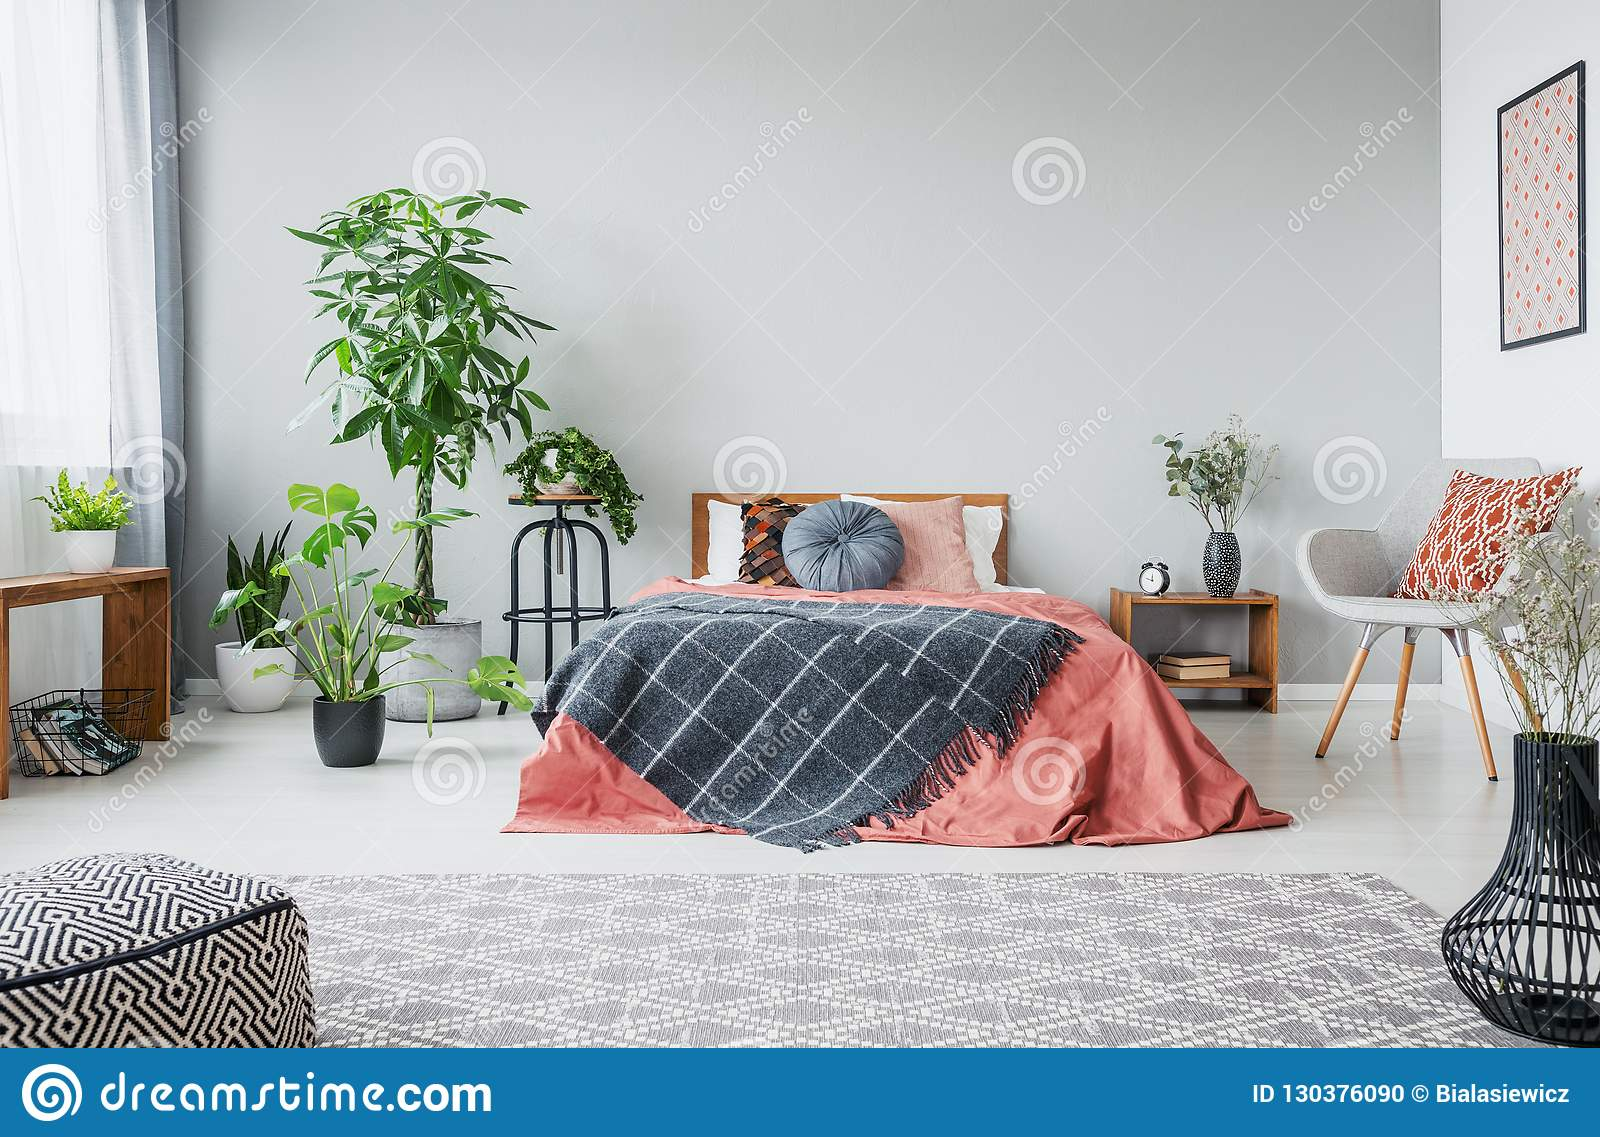 Urban jungle in modern bedroom with king size bed, comfortable grey armchair and patterned carpet